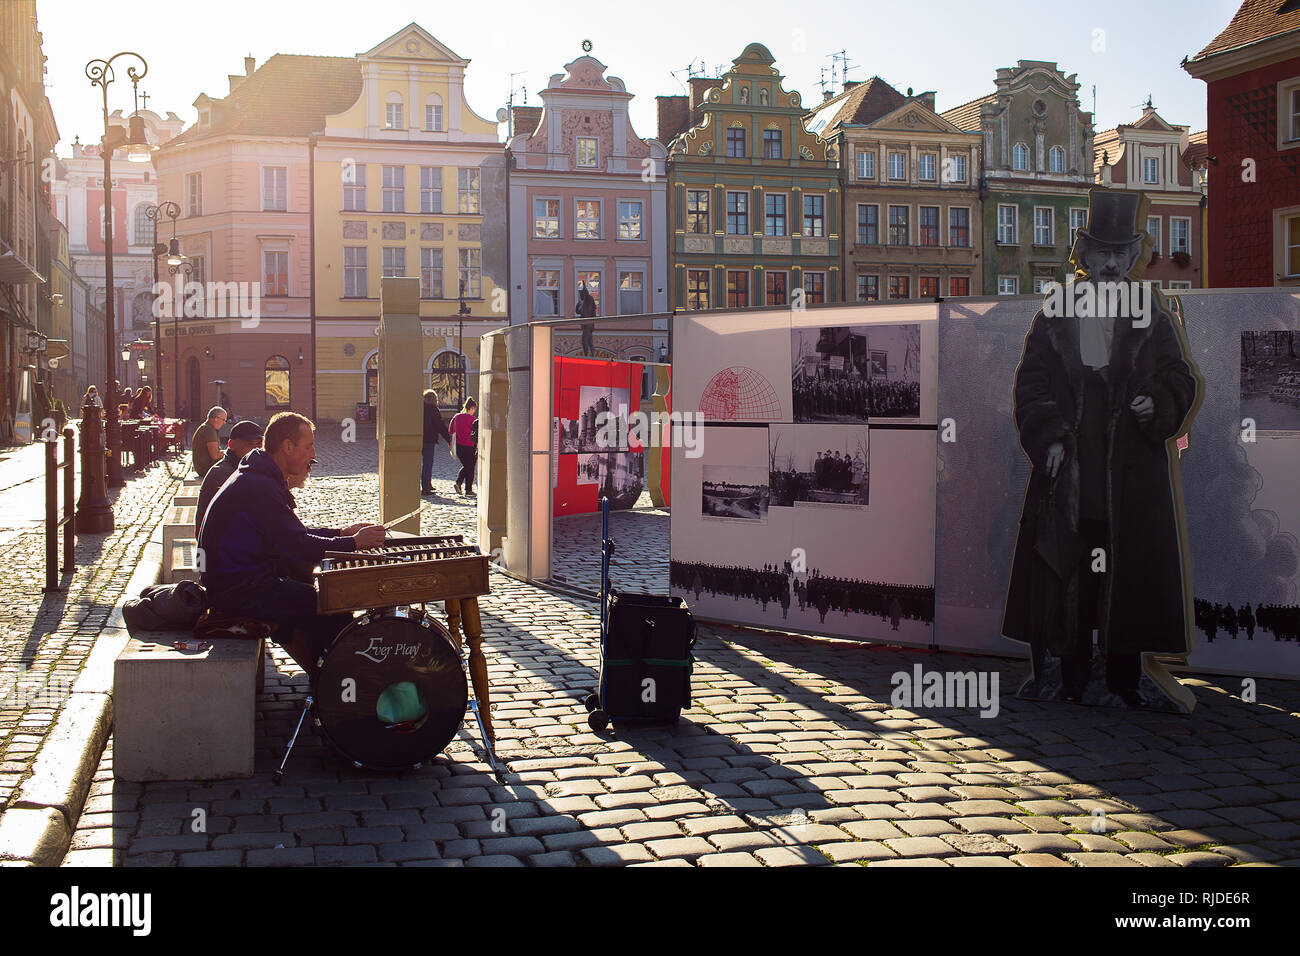 Old Town Square in Poznan remembers national hero Ignacy Paderewski while nearby an artist is playing on hammered dulcimer Stock Photo